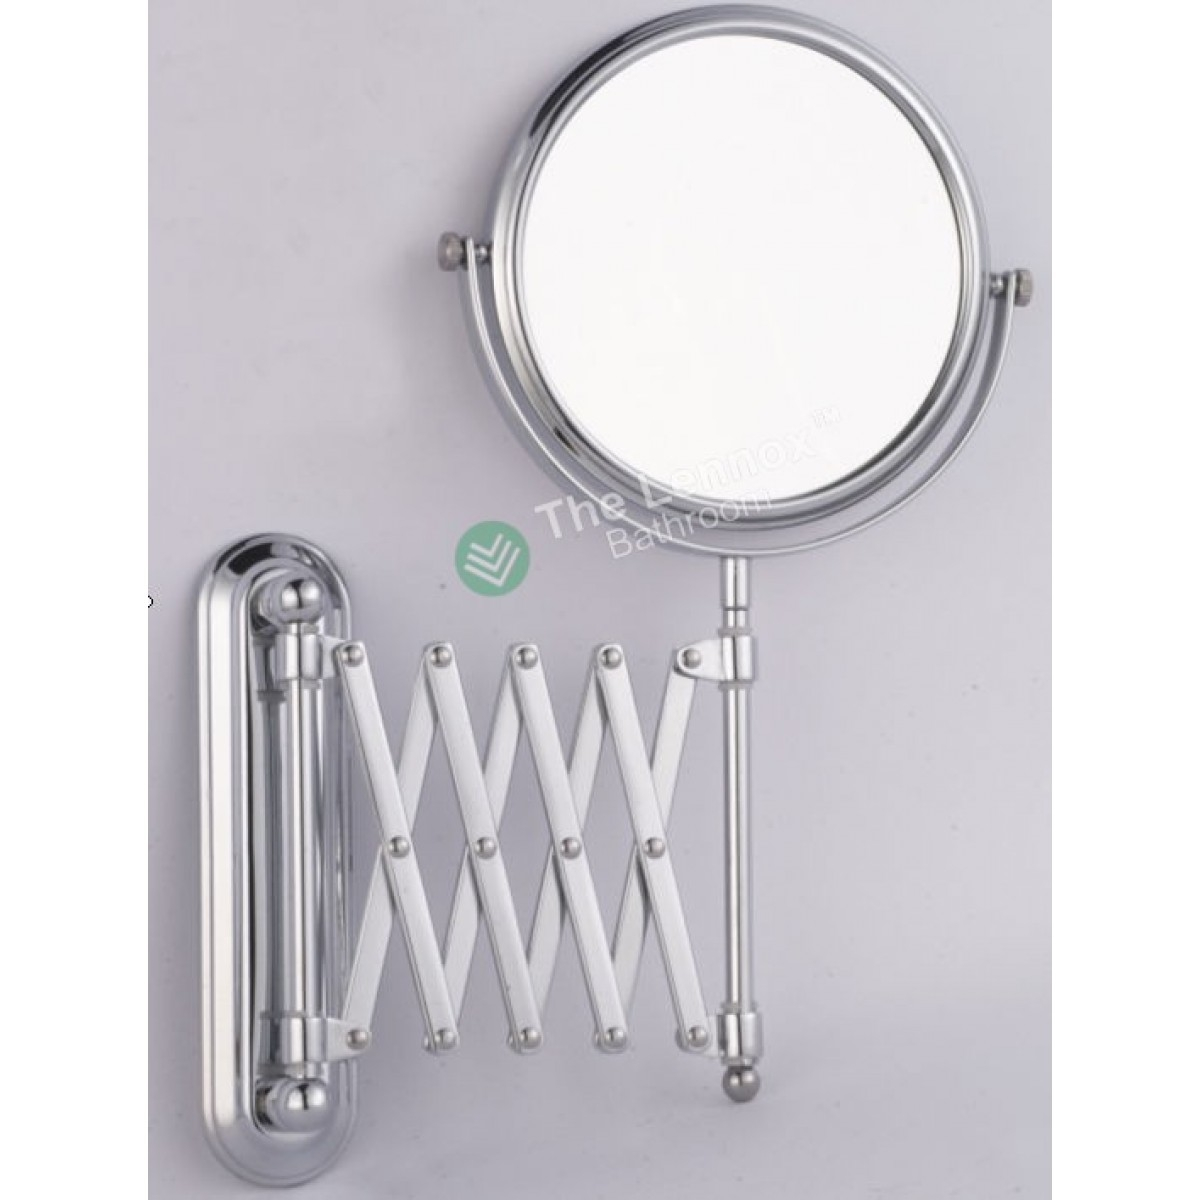 Extending Arm Bathroom Mirror